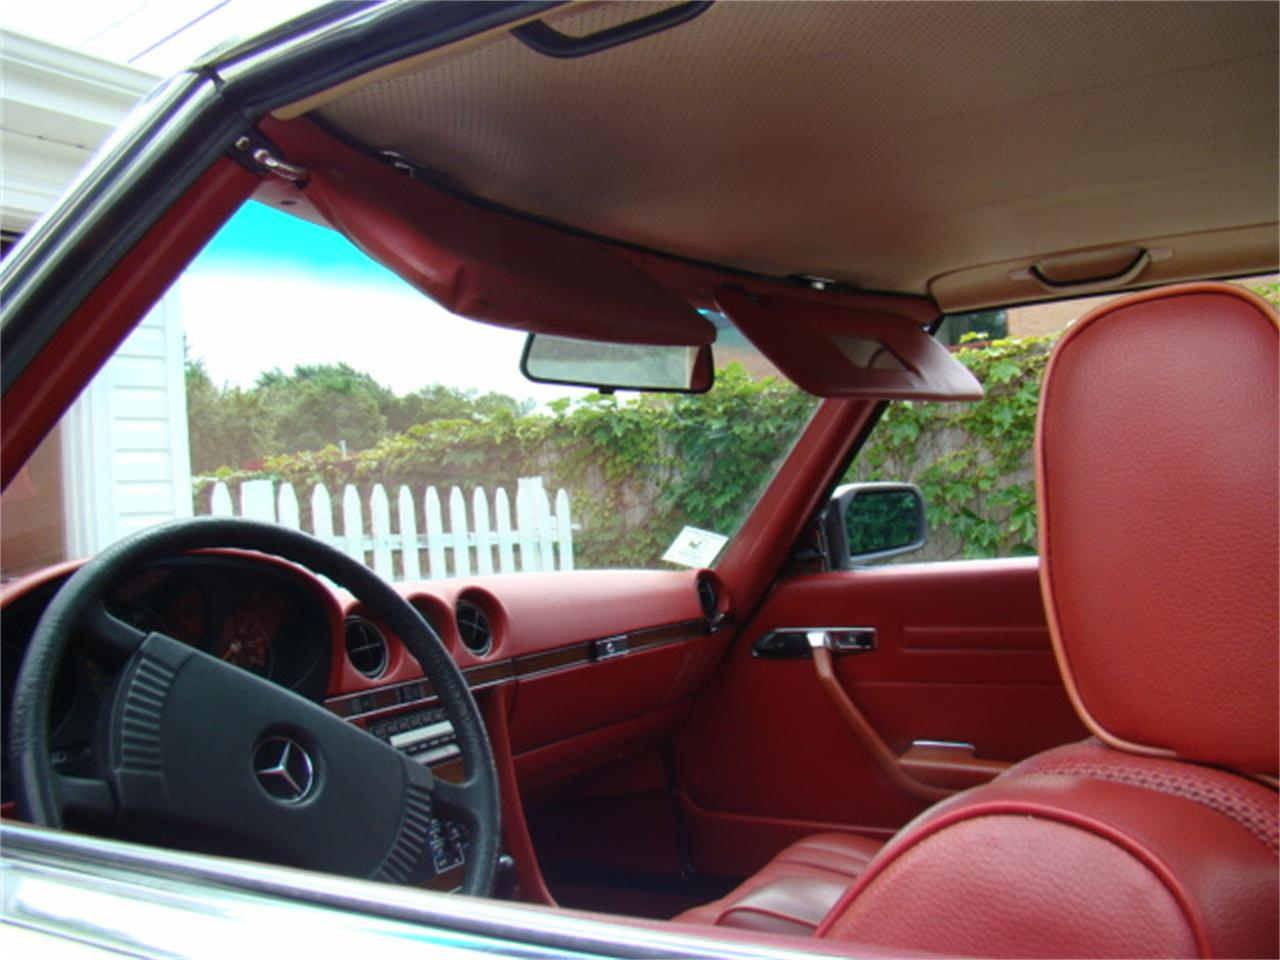 Large Picture of 1978 Mercedes-Benz 450SL located in Deerfield Illinois - $16,990.00 Offered by a Private Seller - F3LR